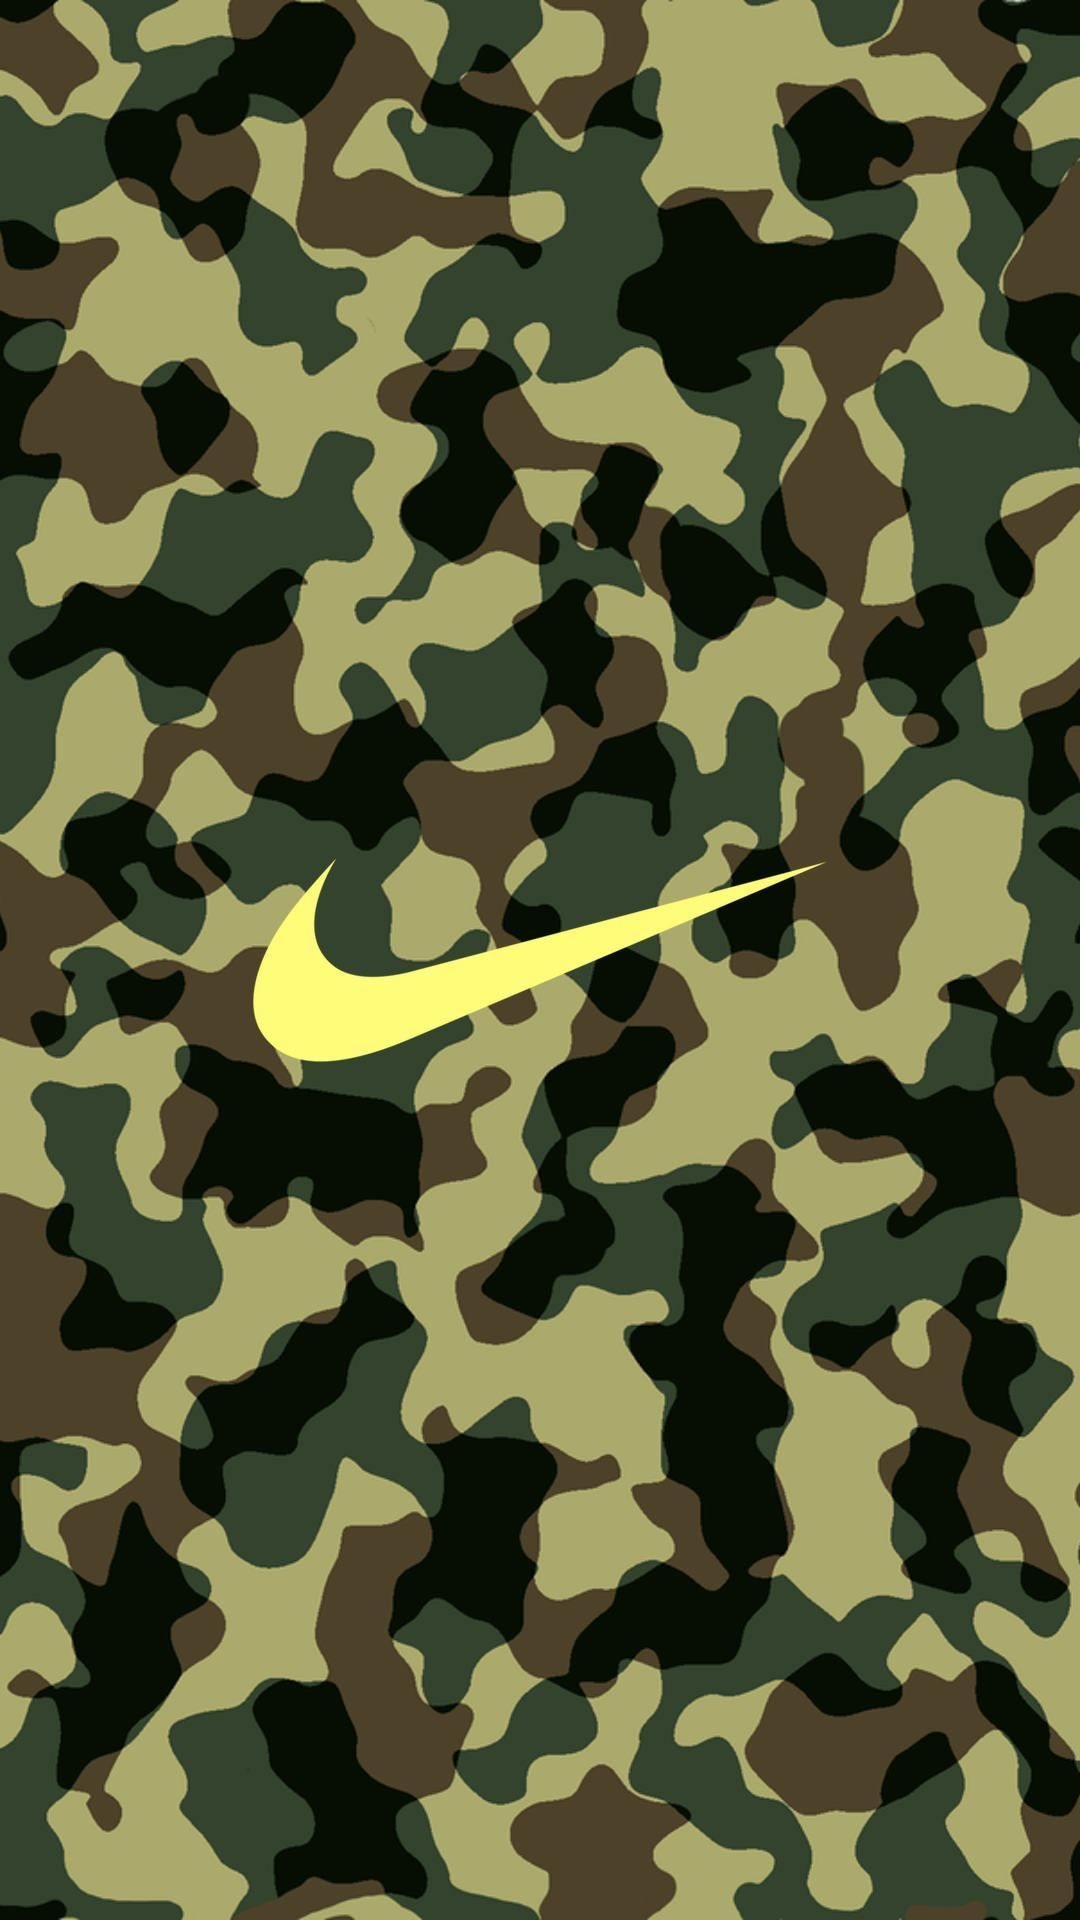 1080x1920 NIKE Logo Camouflage iPhone Wallpaper | Графика | Pinterest | Nike ...